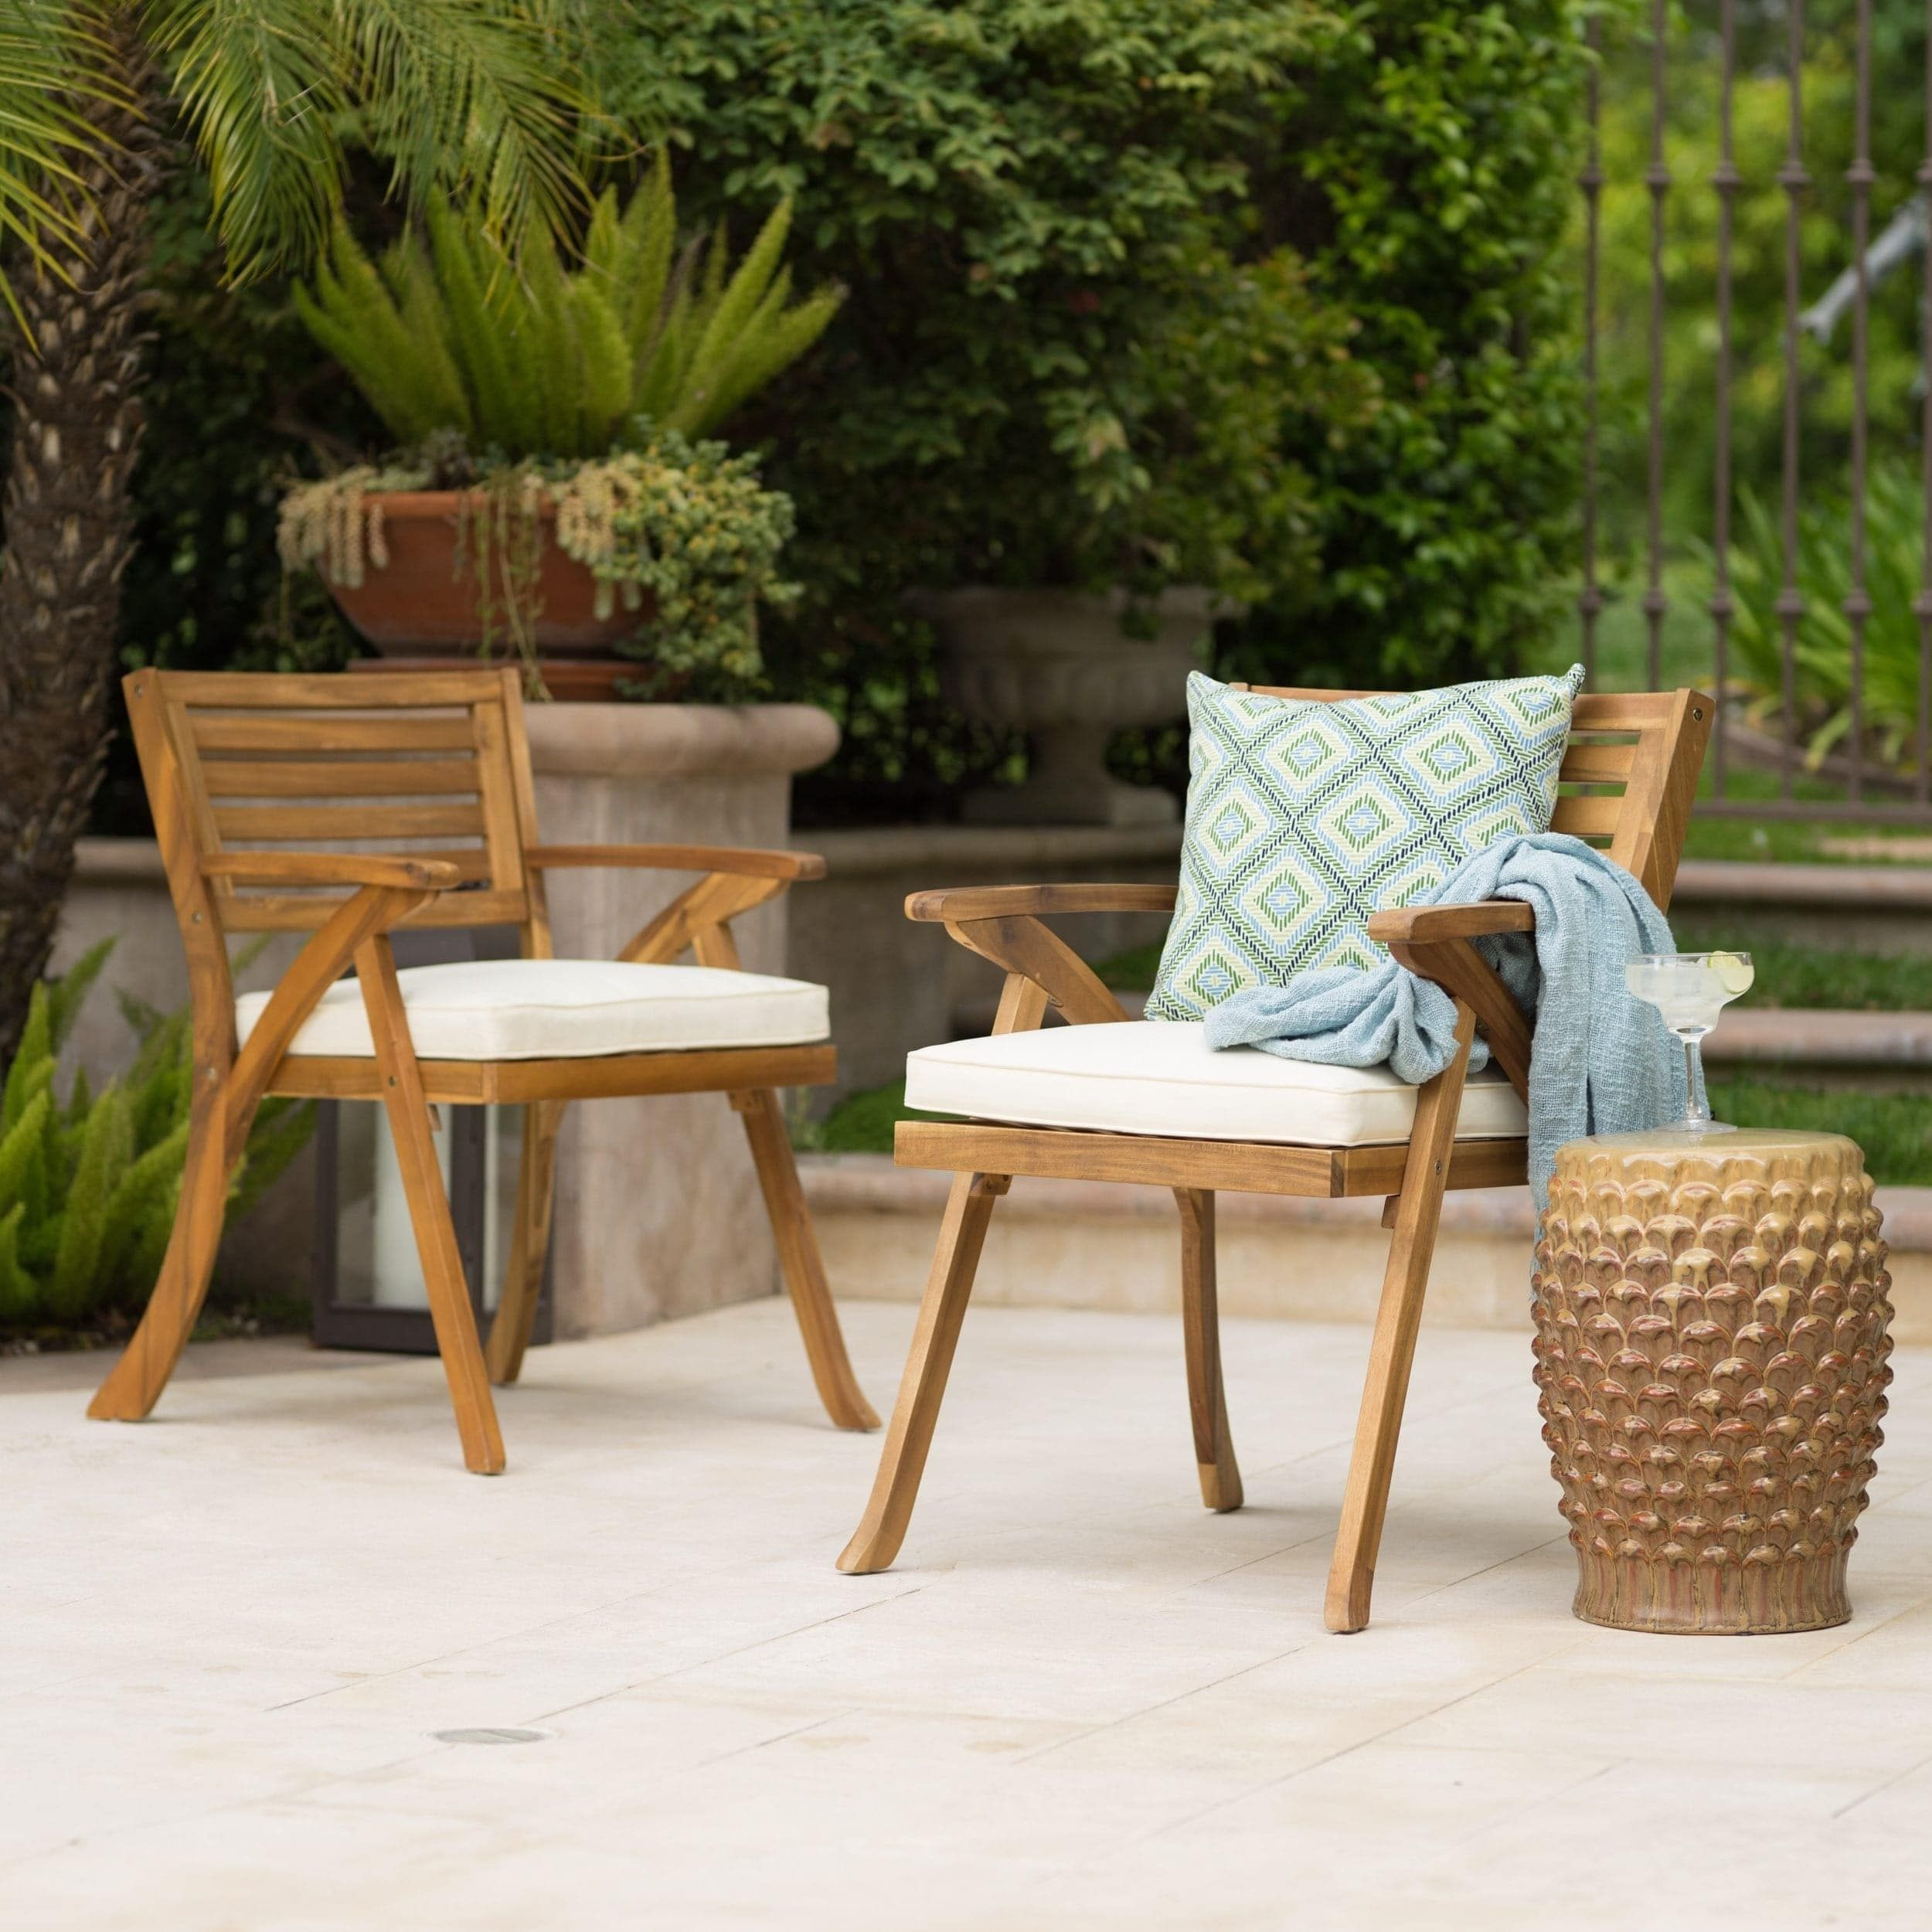 Our Best Patio Furniture Deals Outdoor Dining Chairs Outdoor Chairs Teak Patio Furniture